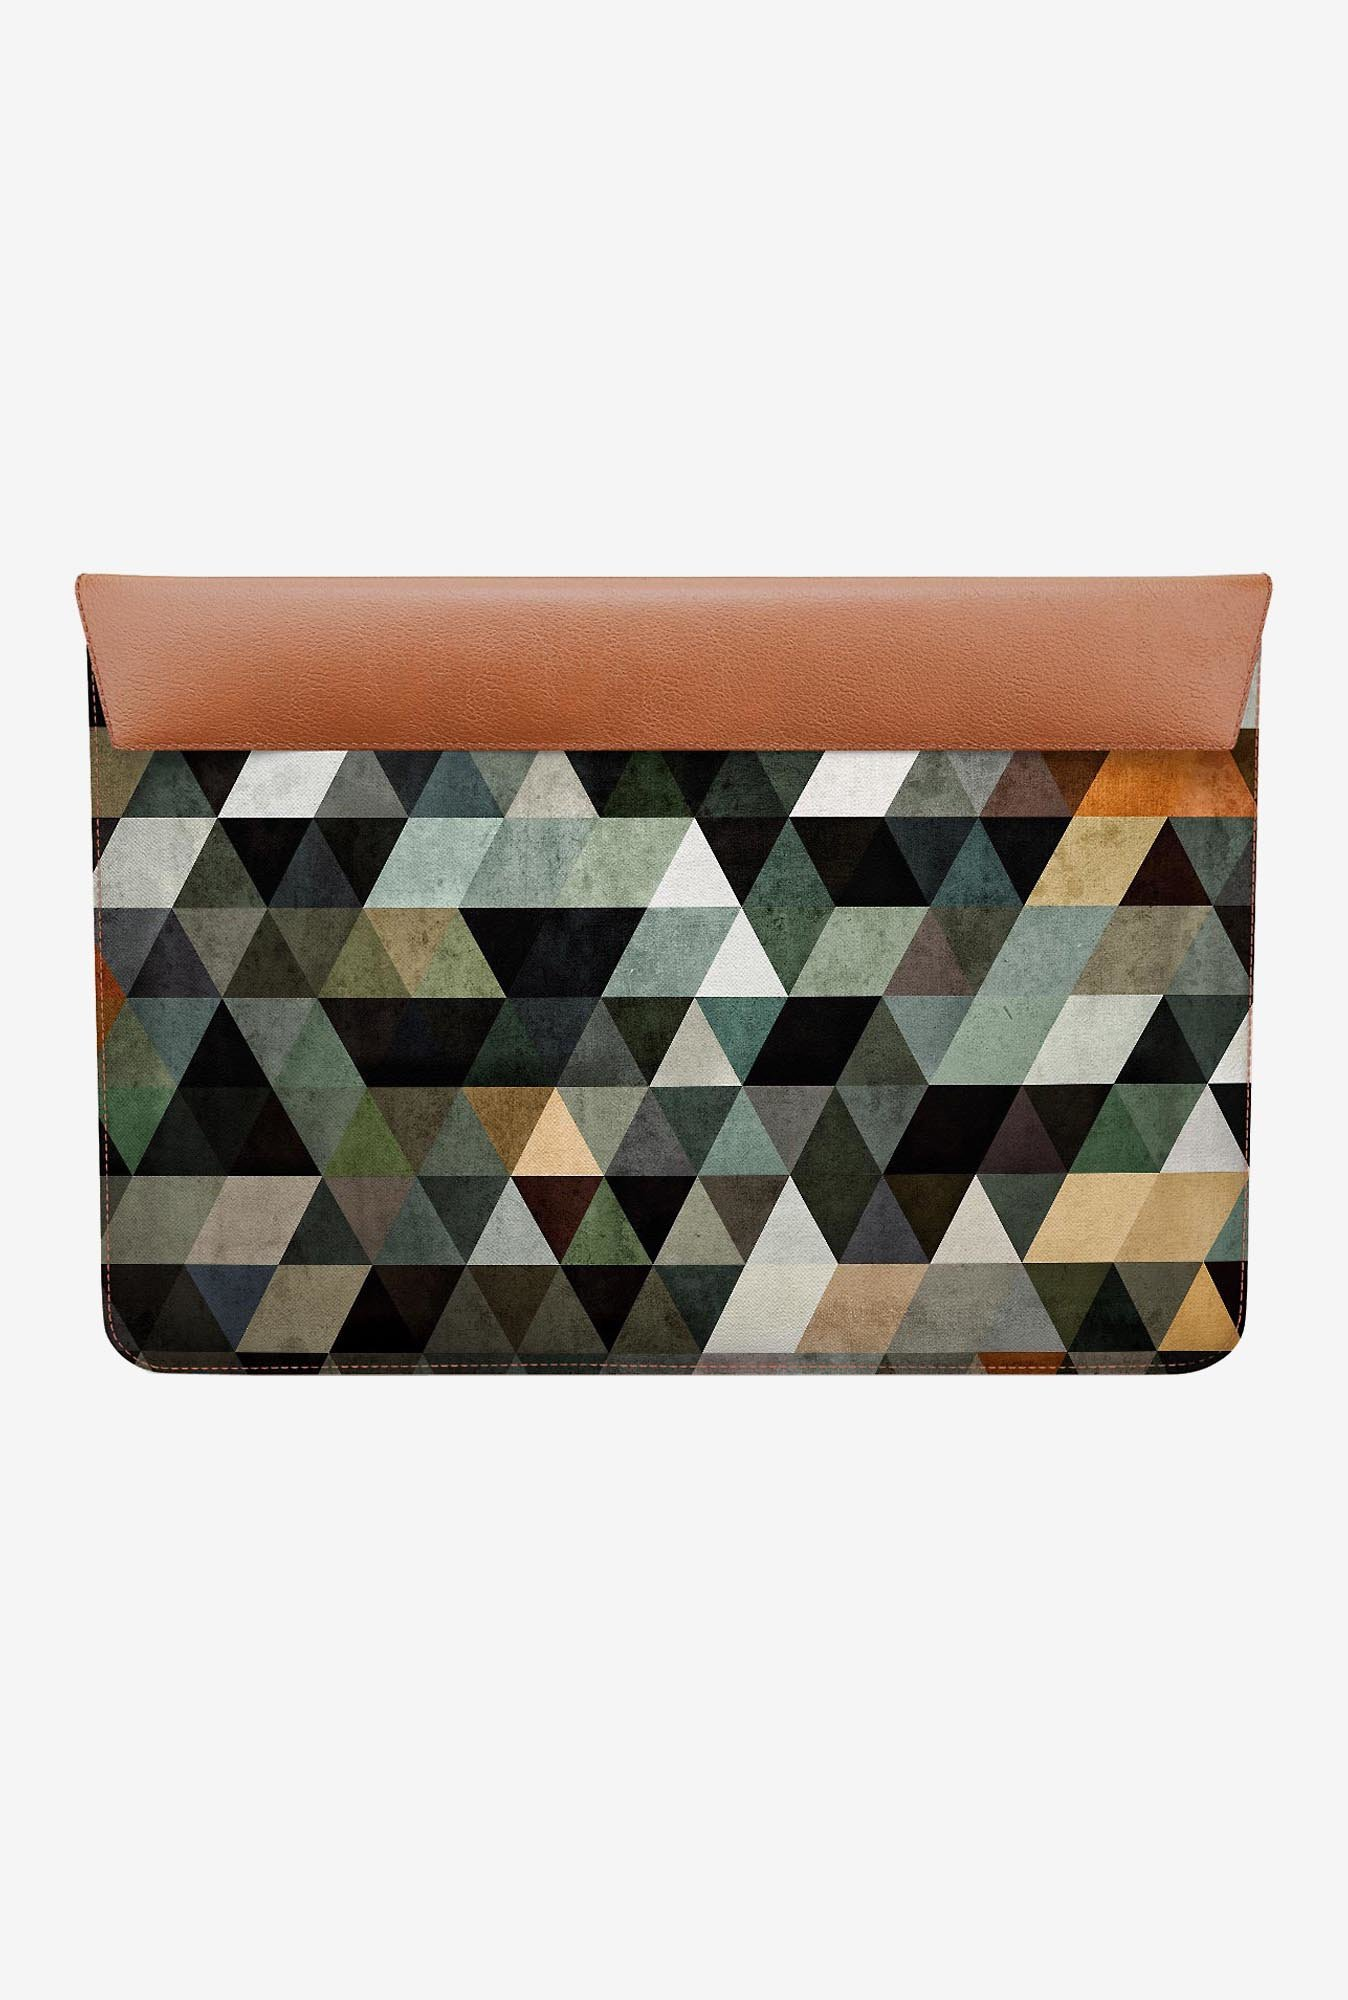 DailyObjects dylykktyk MacBook Air 11 Envelope Sleeve